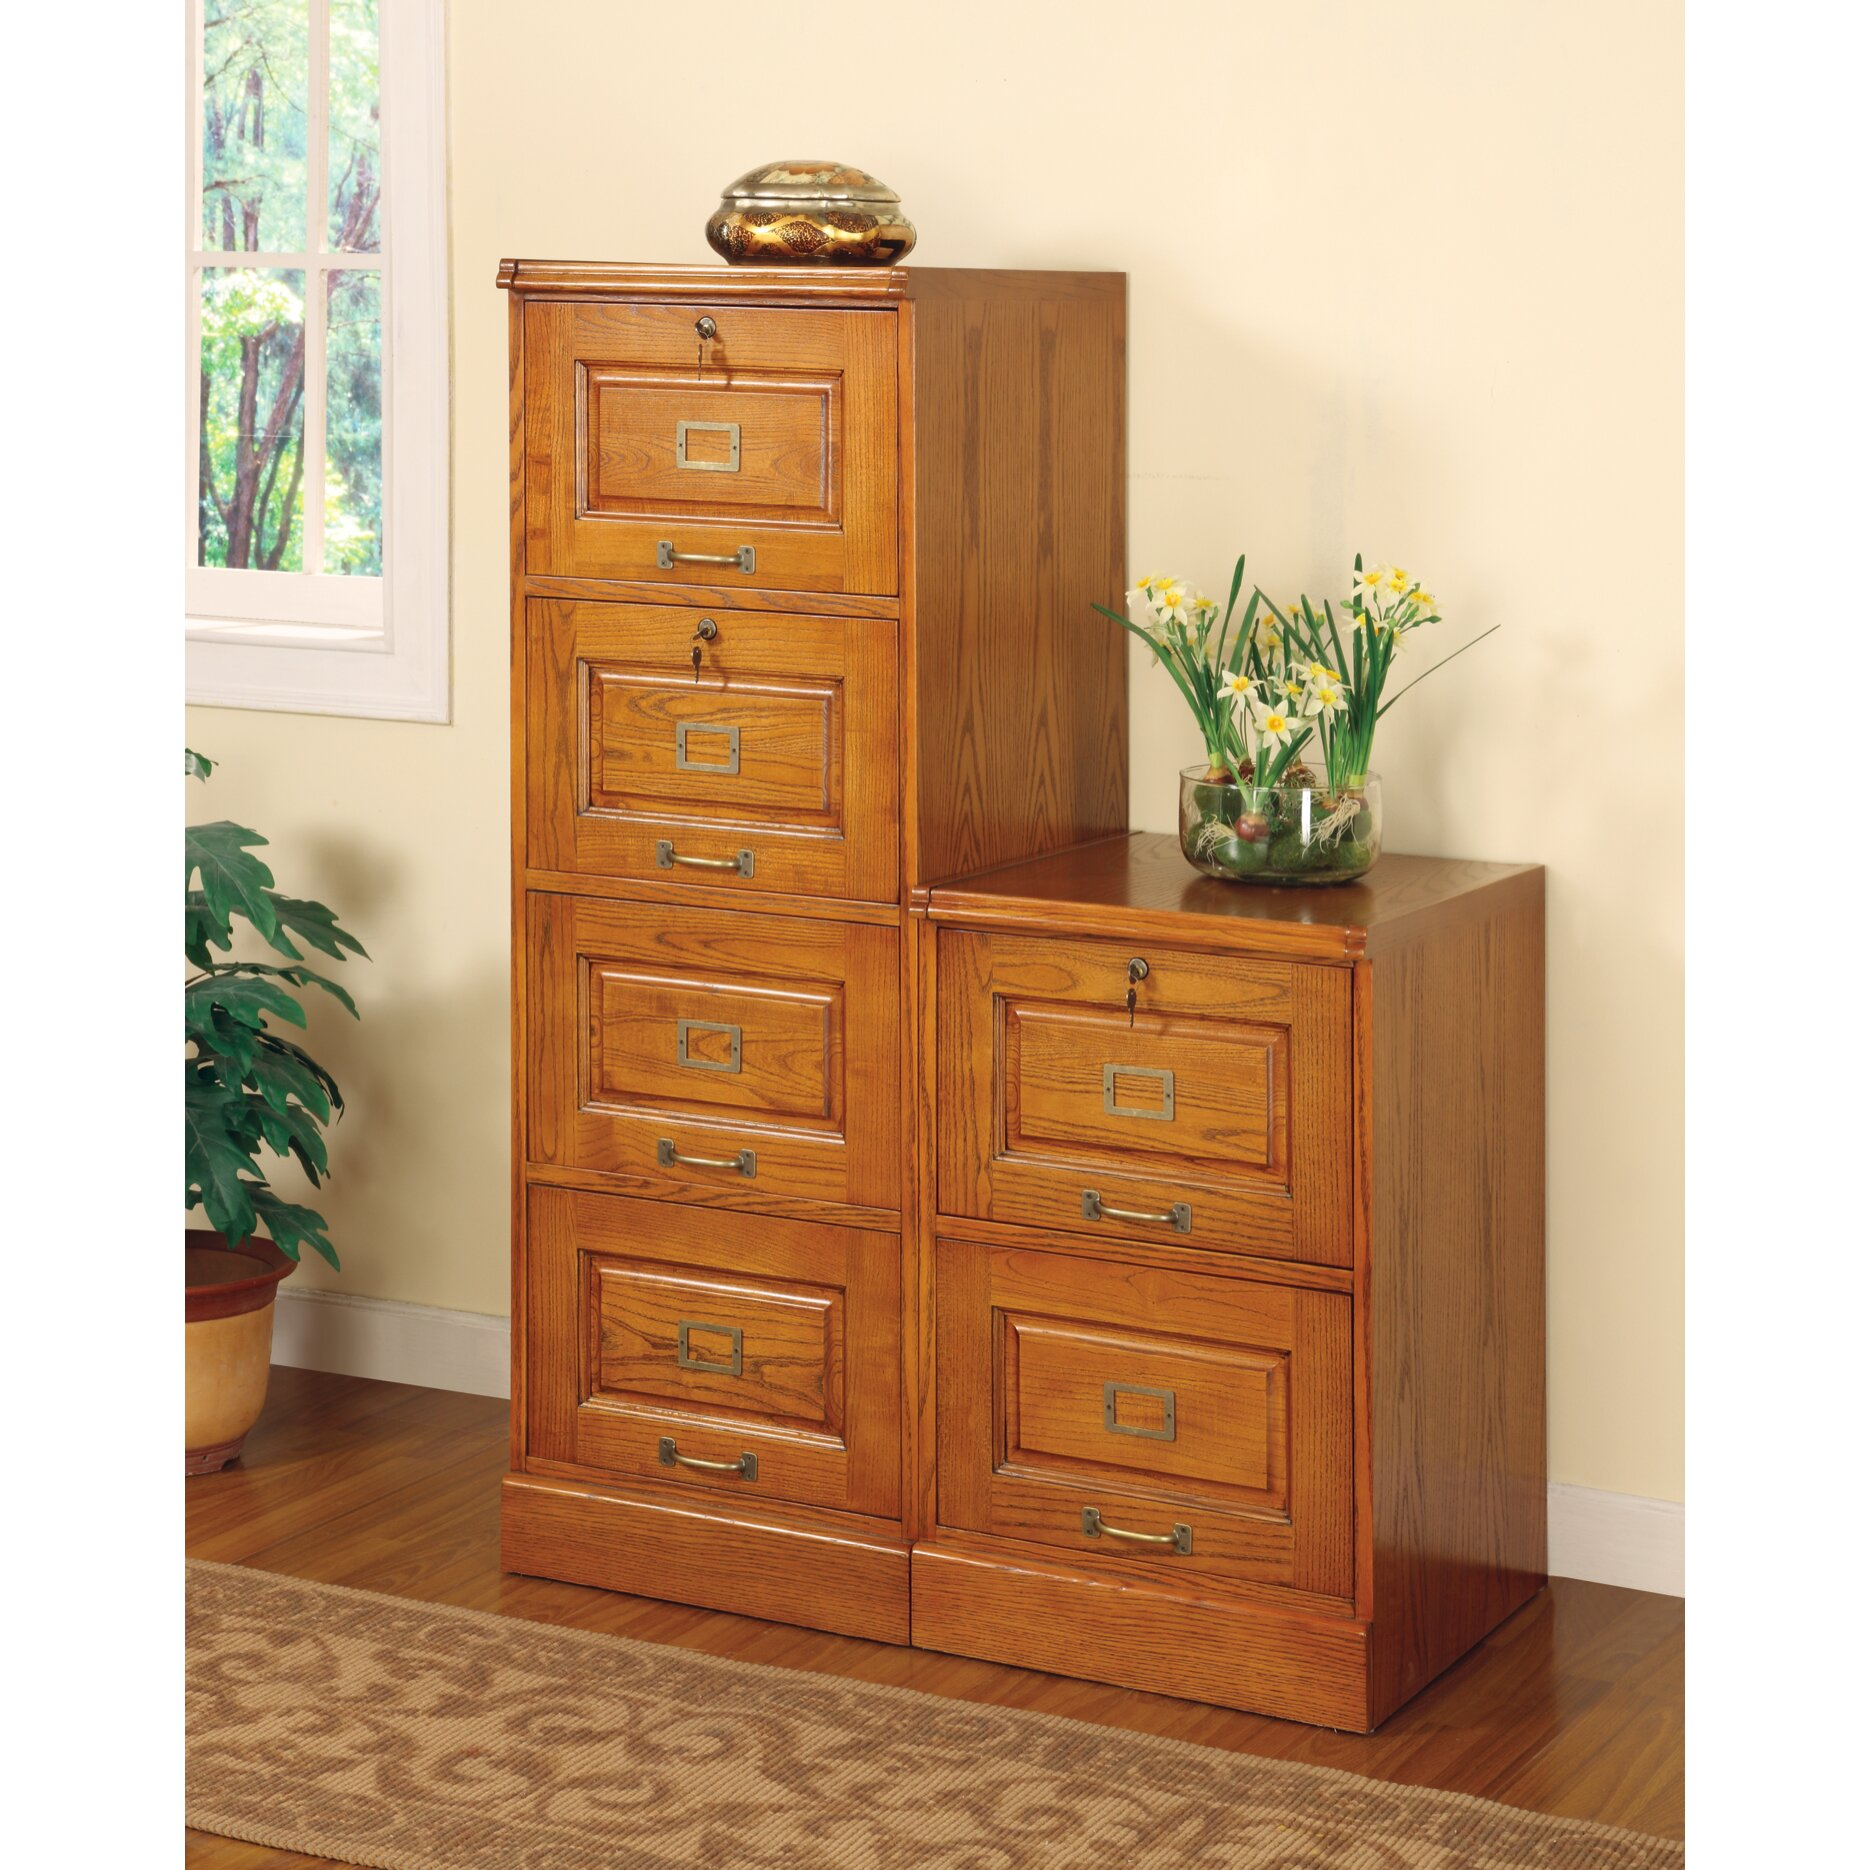 Loon Peak Natazhat 2 Drawer File Cabinet Reviews Wayfair: peak office furniture